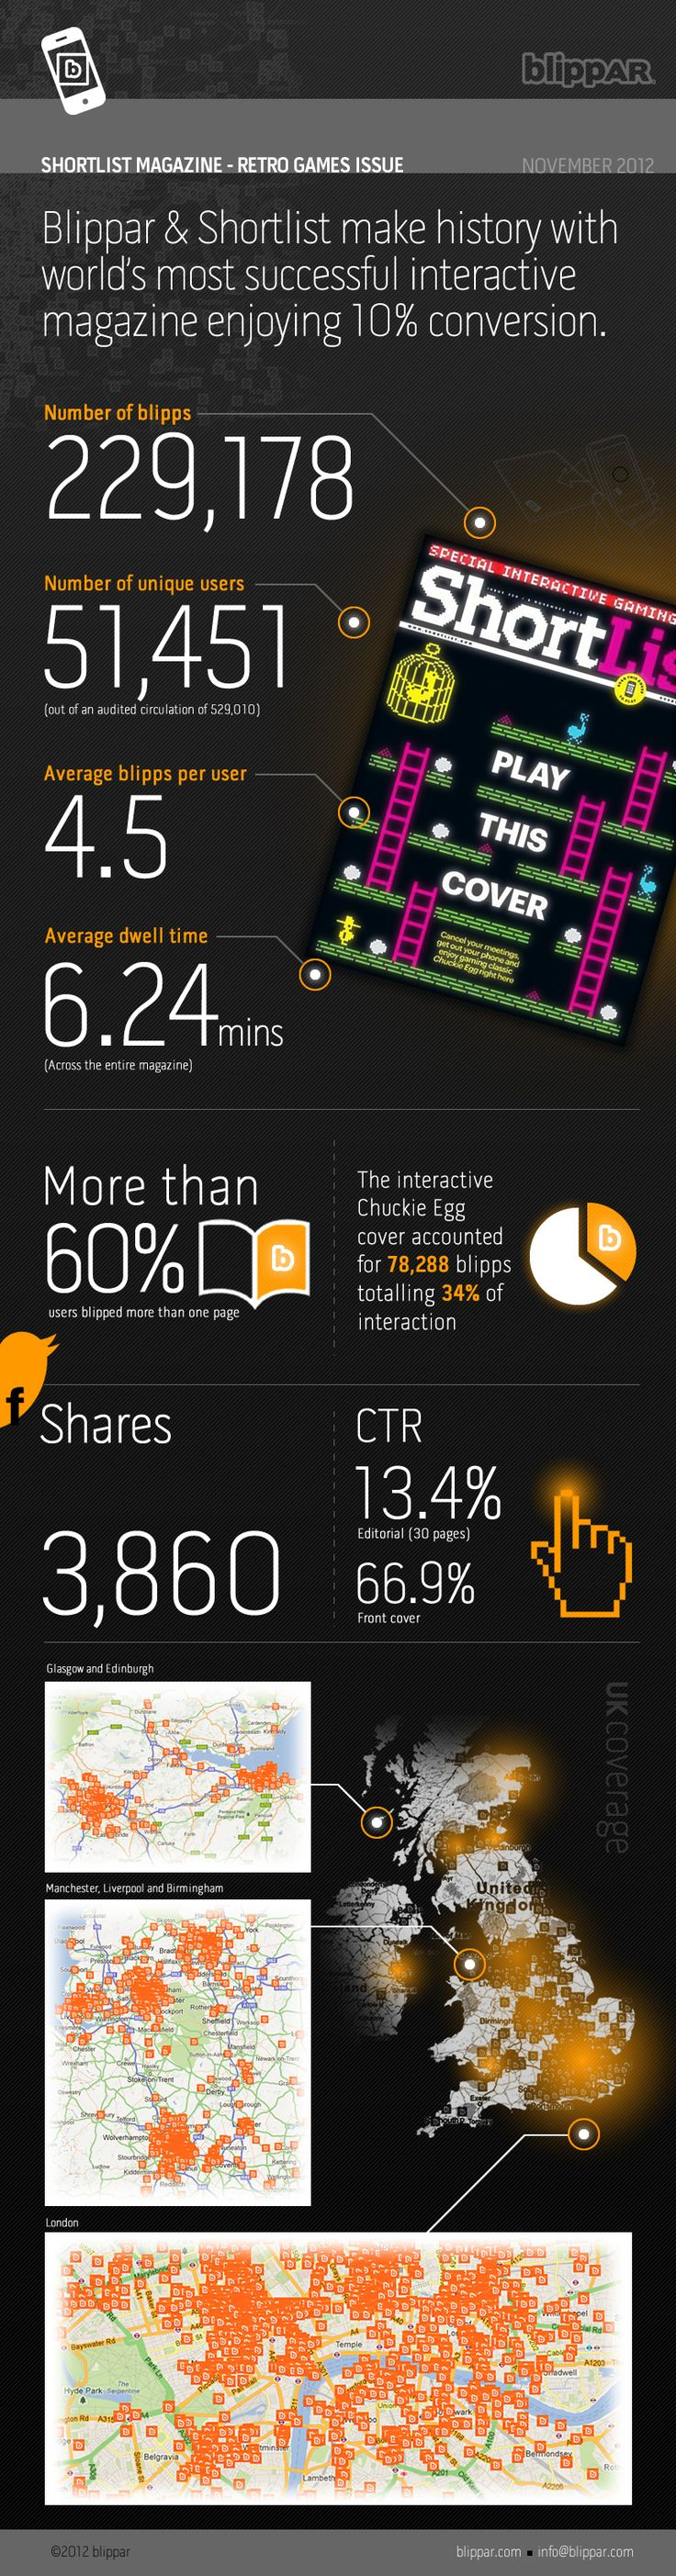 Blippar Computer Graphic #augmented reality